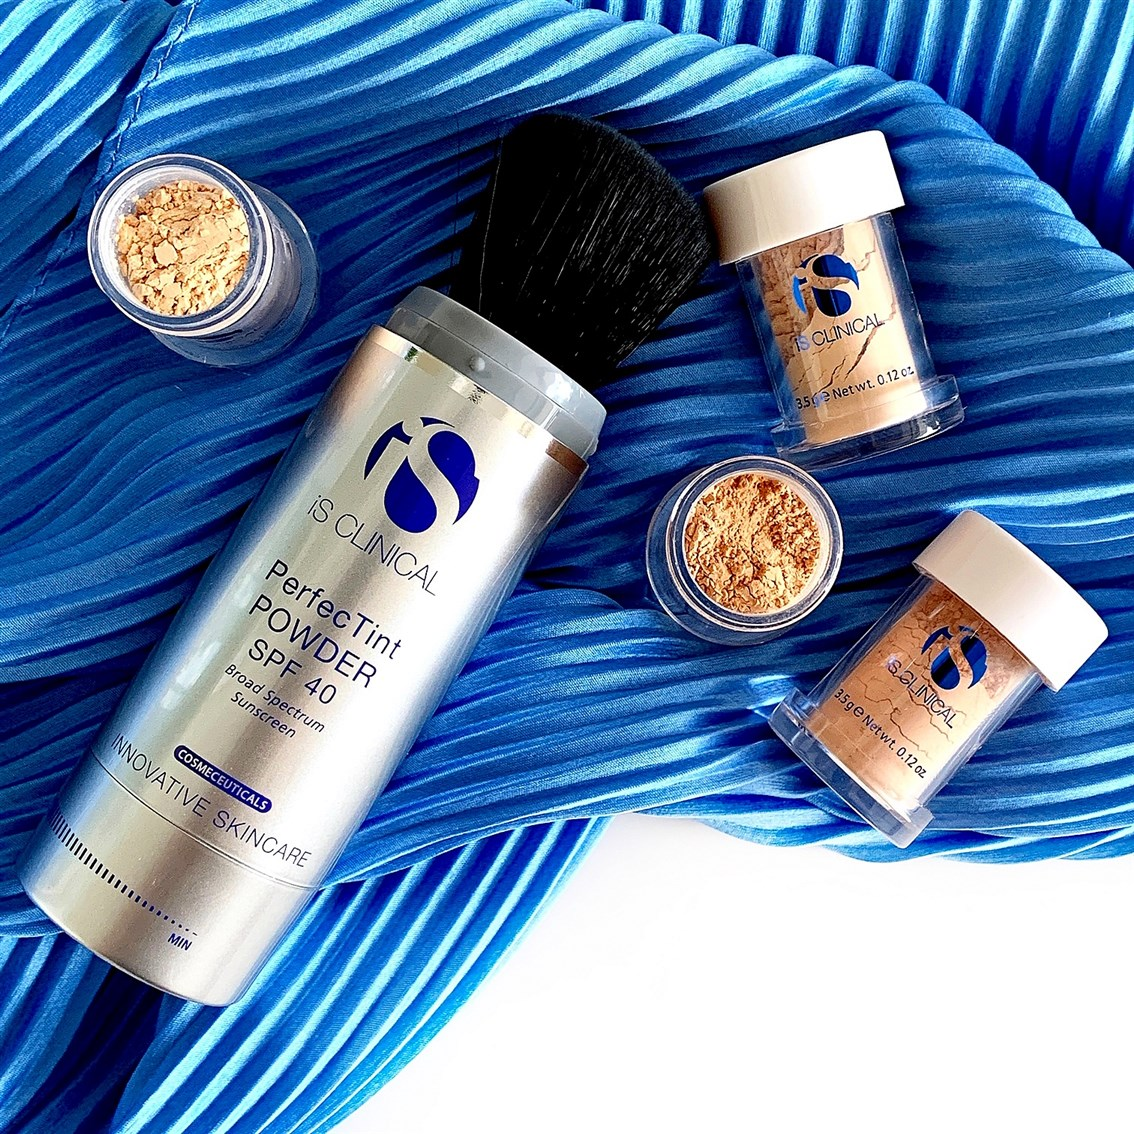 Is Clinical PerfecTint Powder SPF40